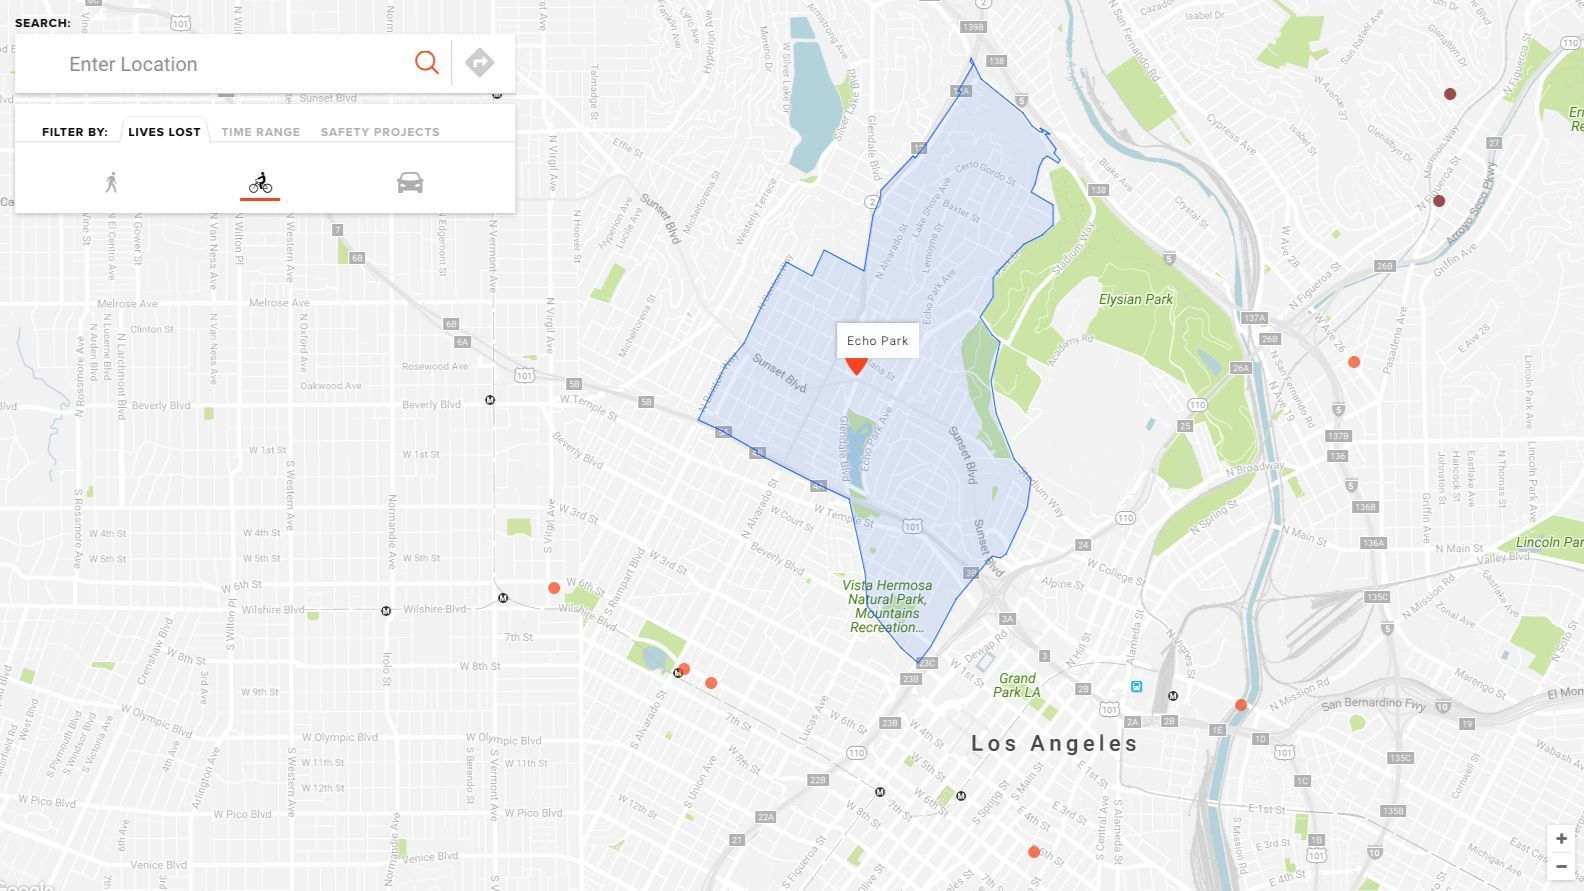 A screen grab of a Vision Zero map detailing bicycling fatalities in and around L.A.'s Echo Park neighborhood since 2011. Red dots indicate where a cyclist was killed.